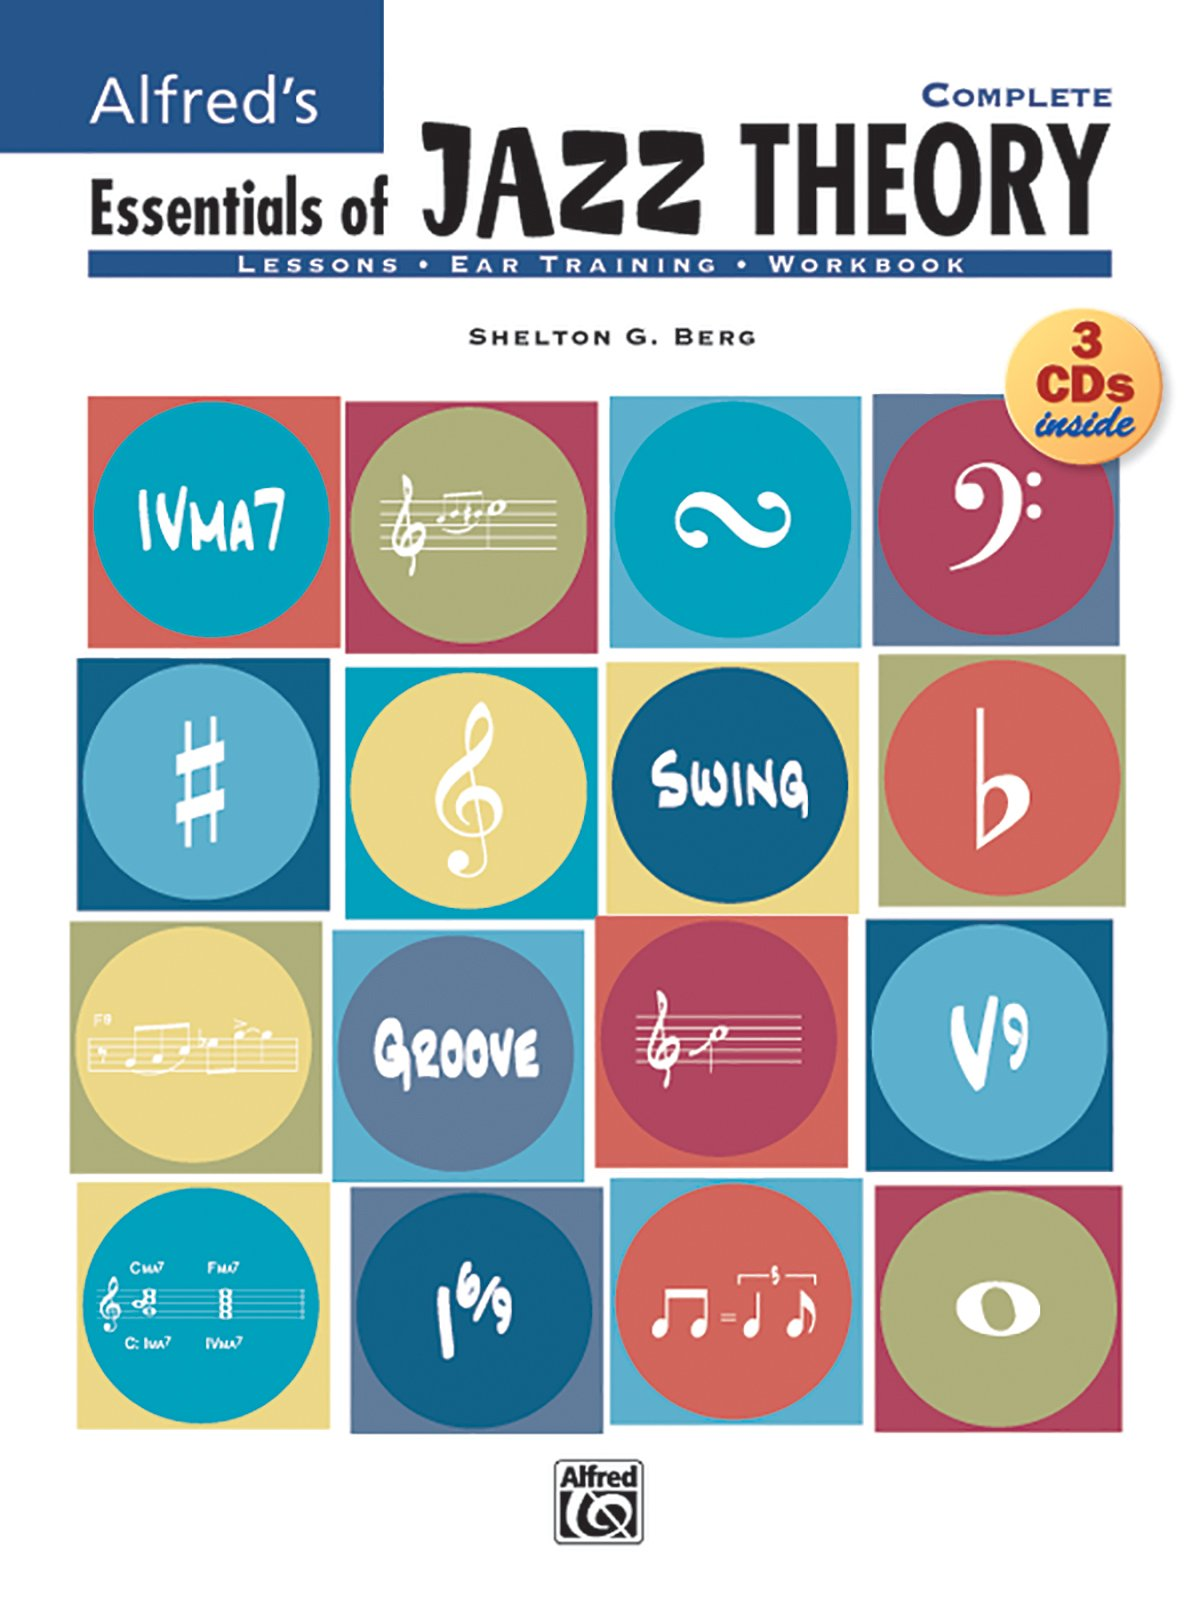 Alfred's Essentials of Jazz Theory, Complete 1-3: Book & 3 CDs ...